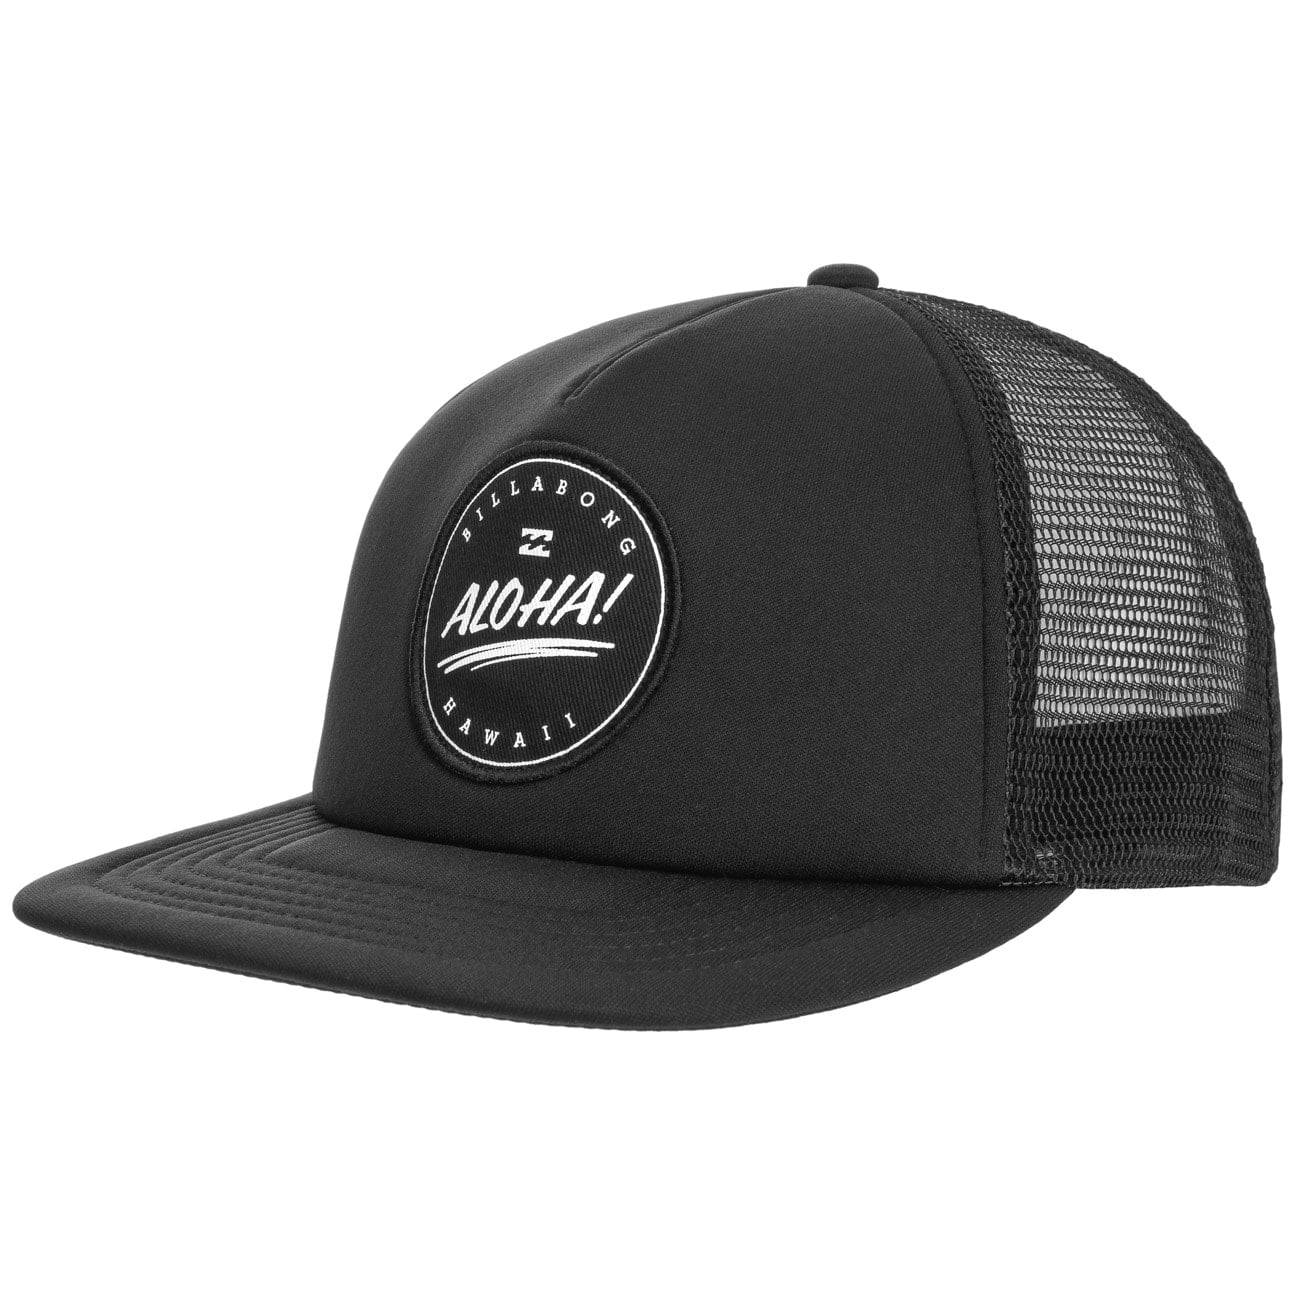 Gorra Alohawaii Trucker by Billabong  gorra de b?isbol